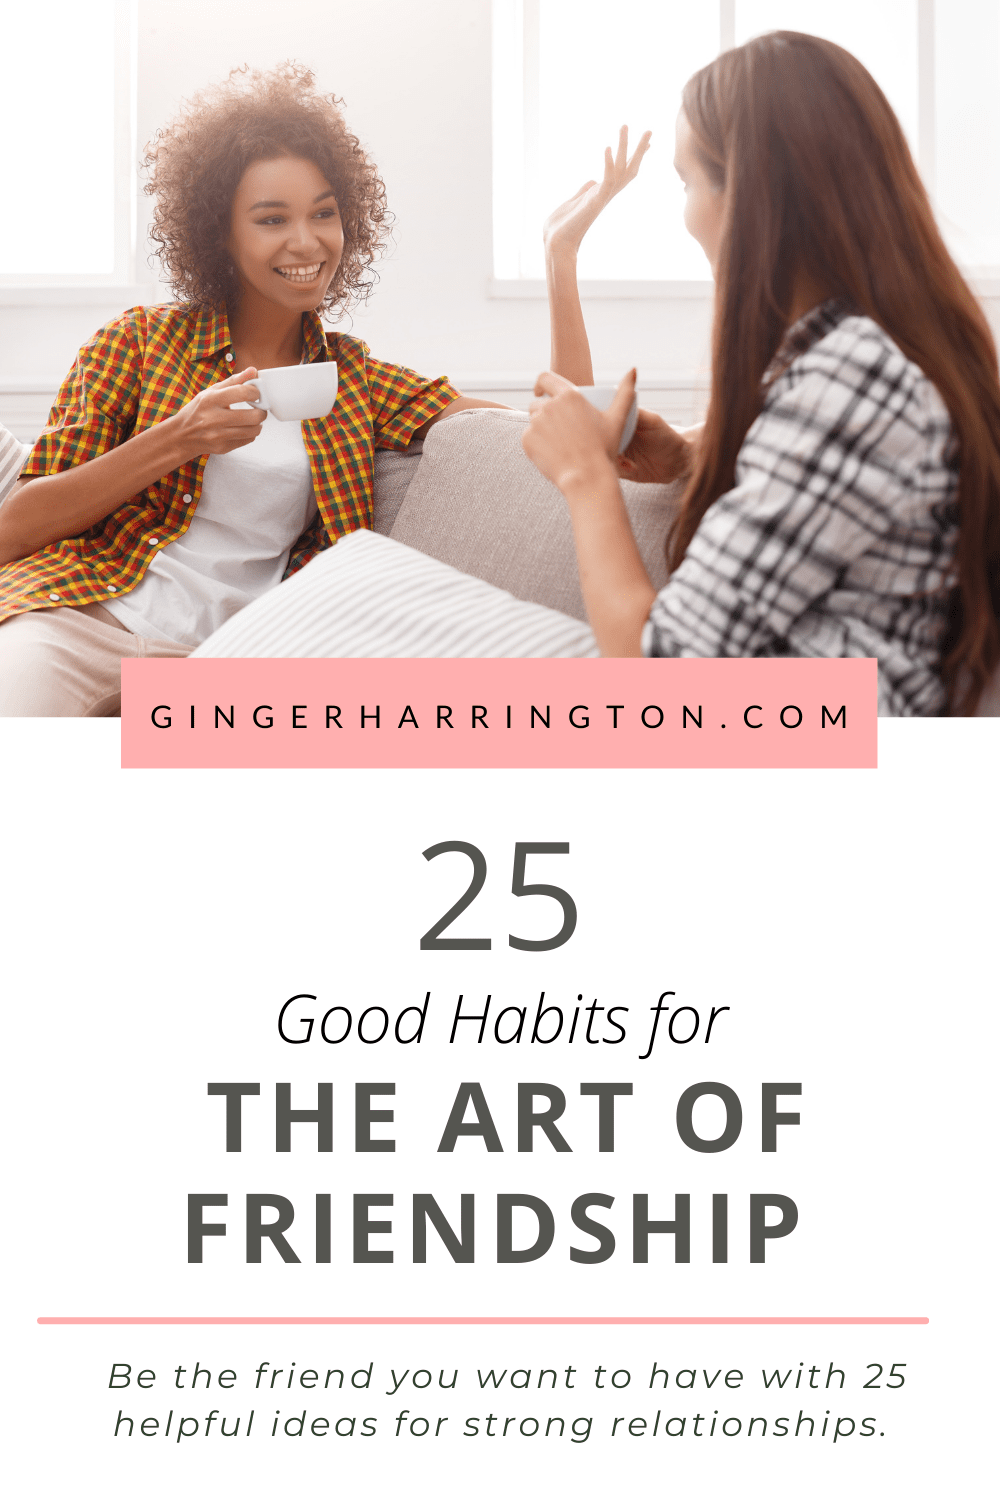 The art of friendship is built on good relational habits. Learn how to be a better friend with these simple ideas to enjoy friendship today.